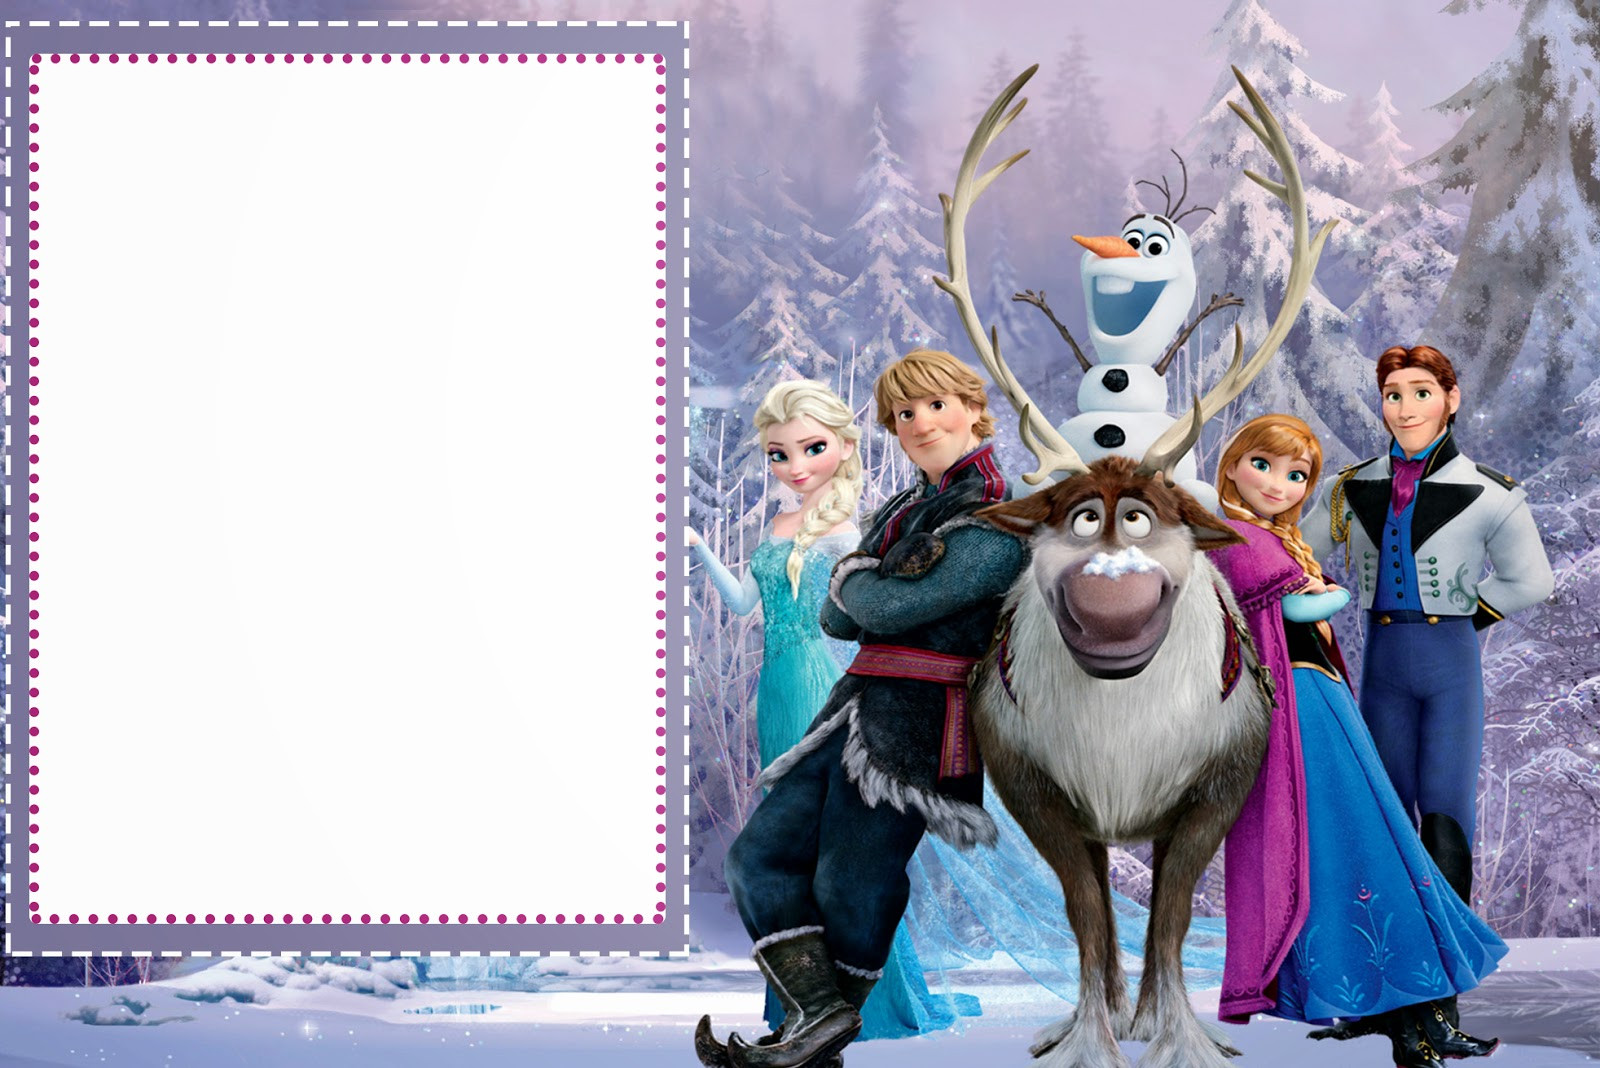 Frozen Invitations Printable Free Frozen Free Printable Cards or Party Invitations Oh My